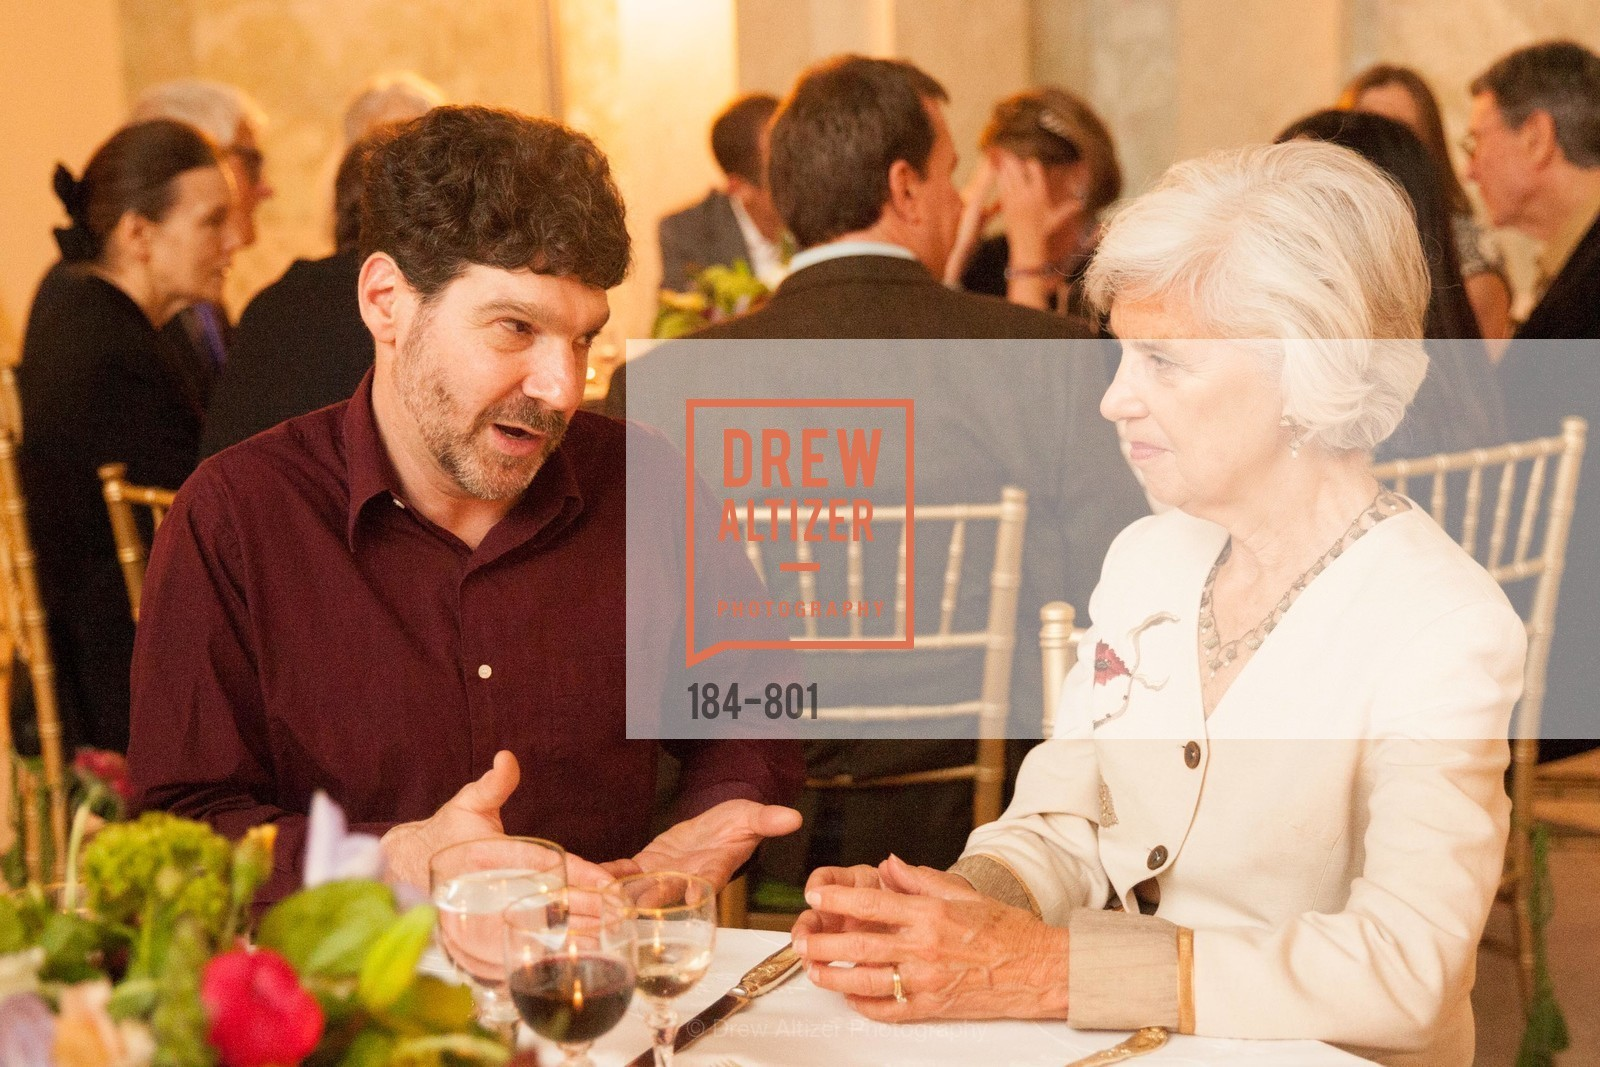 Bret Weinstein, Sherry Shute, GETTY Hosts Leakey Foundation Dinner, US, April 24th, 2015,Drew Altizer, Drew Altizer Photography, full-service agency, private events, San Francisco photographer, photographer california